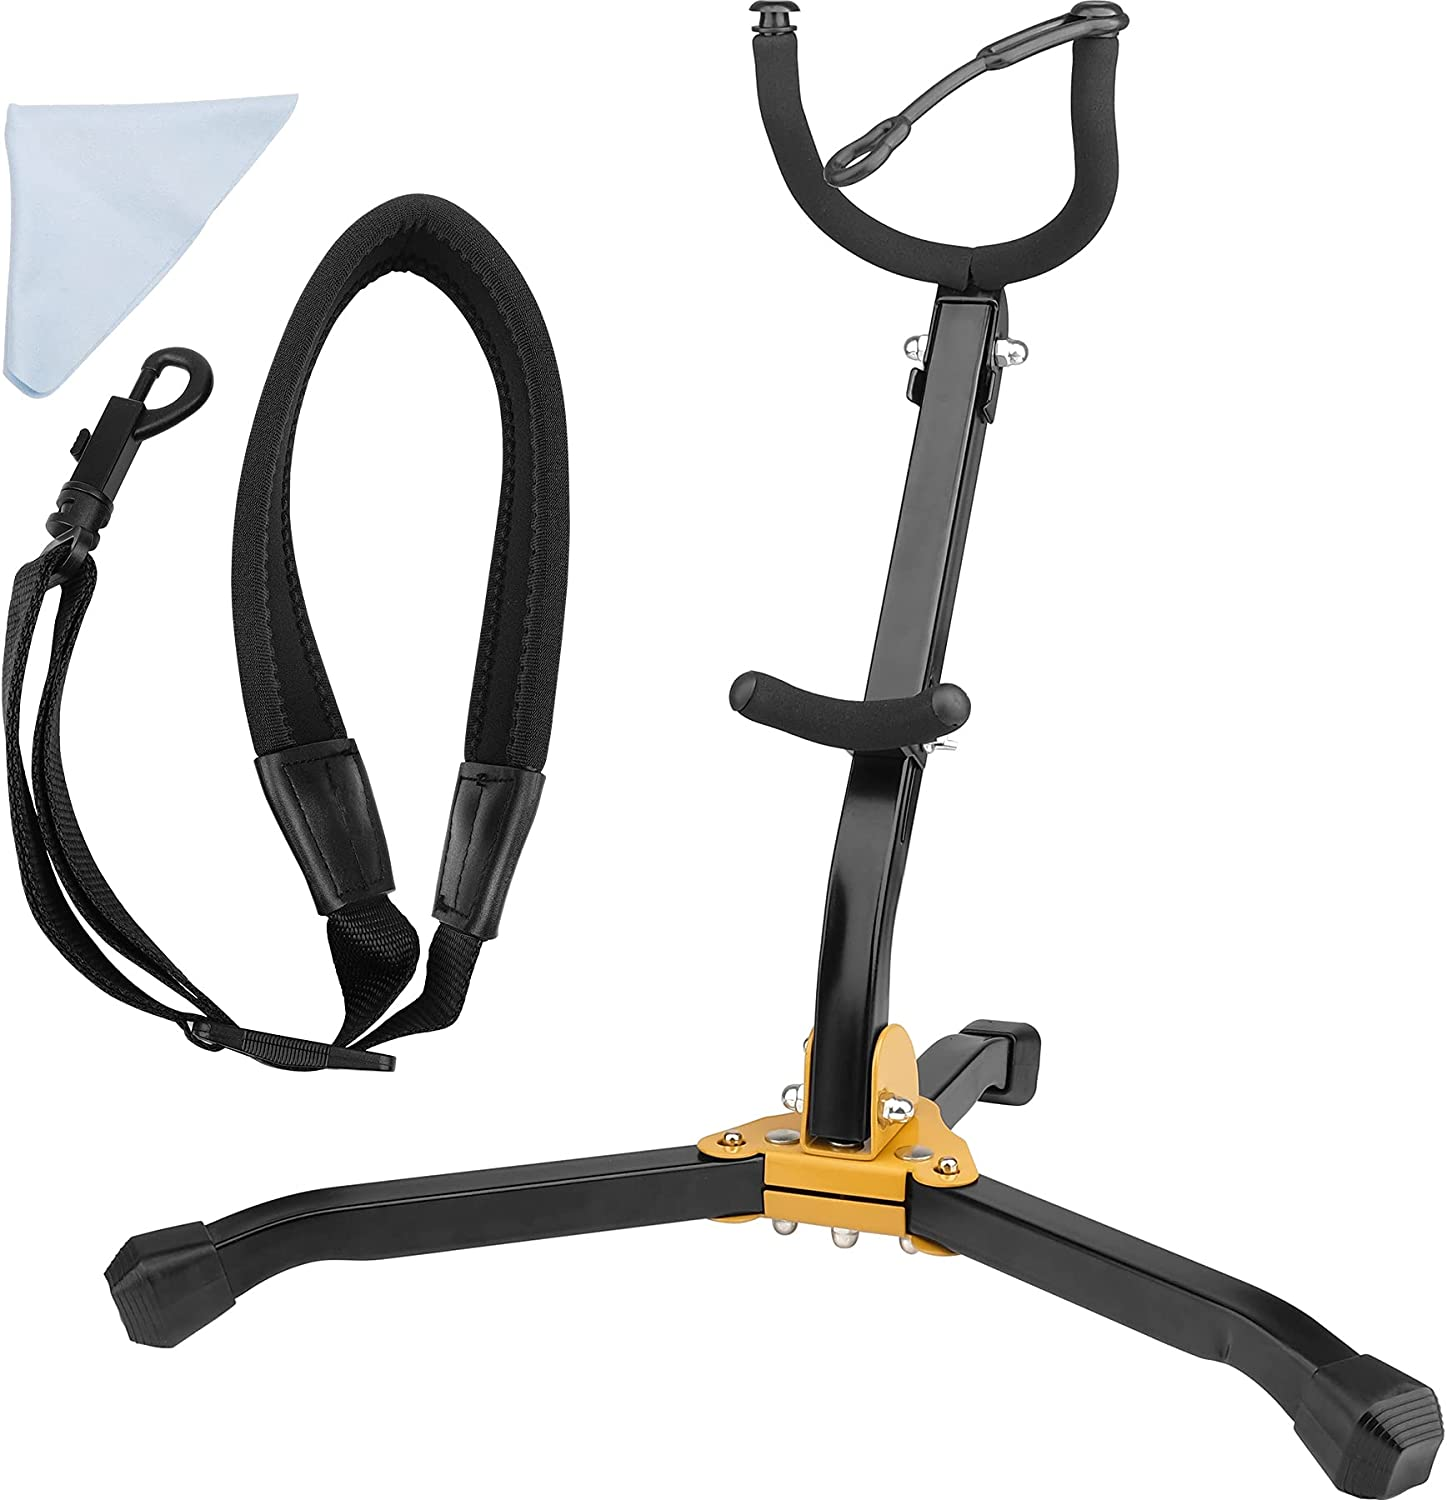 Eison New New product! New type item Saxophone Stand Foldable Tenor Sax Br Alto